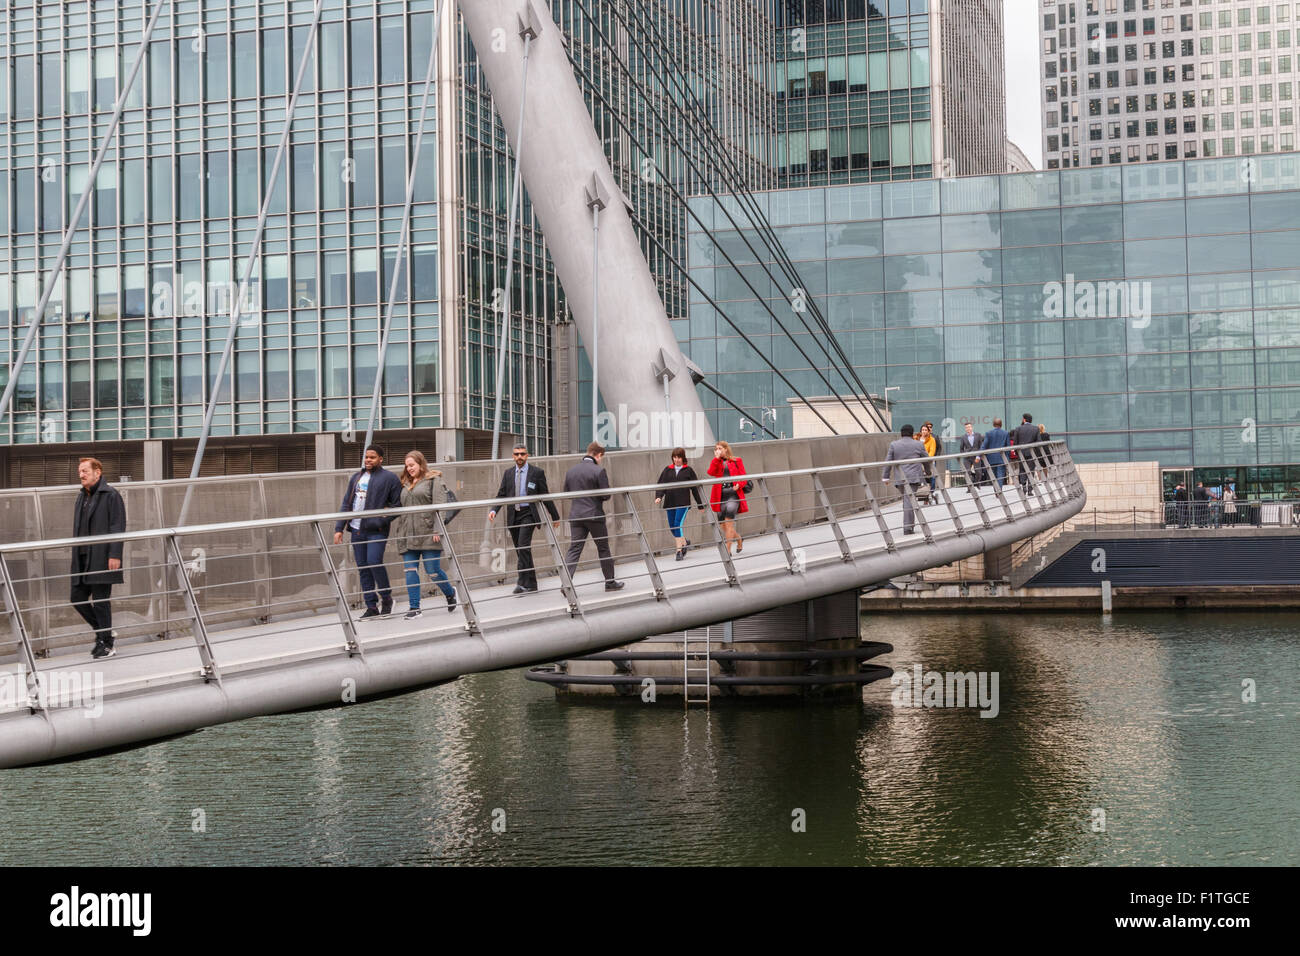 Office workers crossing Wilkinson bridge in London's Canary Wharf - in the docklands - Stock Image